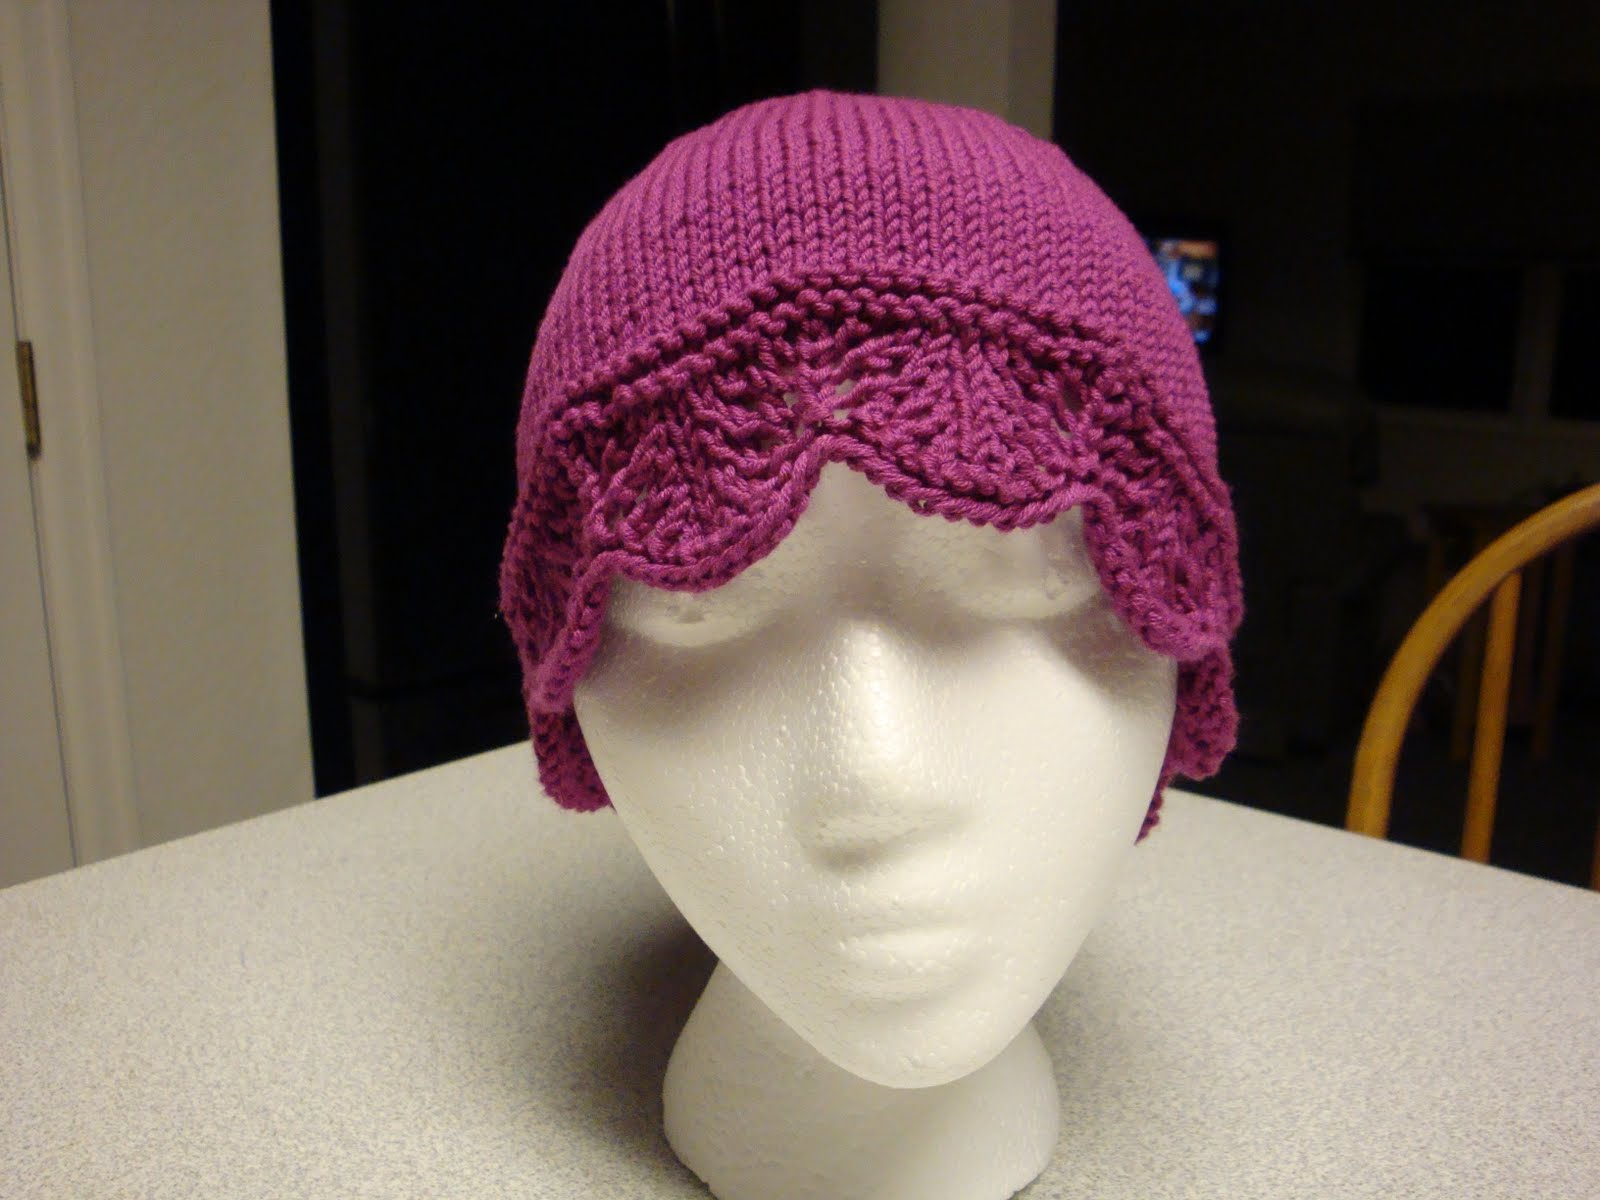 Knitted Chemo Cap Patterns Free : Chemo Cap Knitting Pattern   Design Patterns